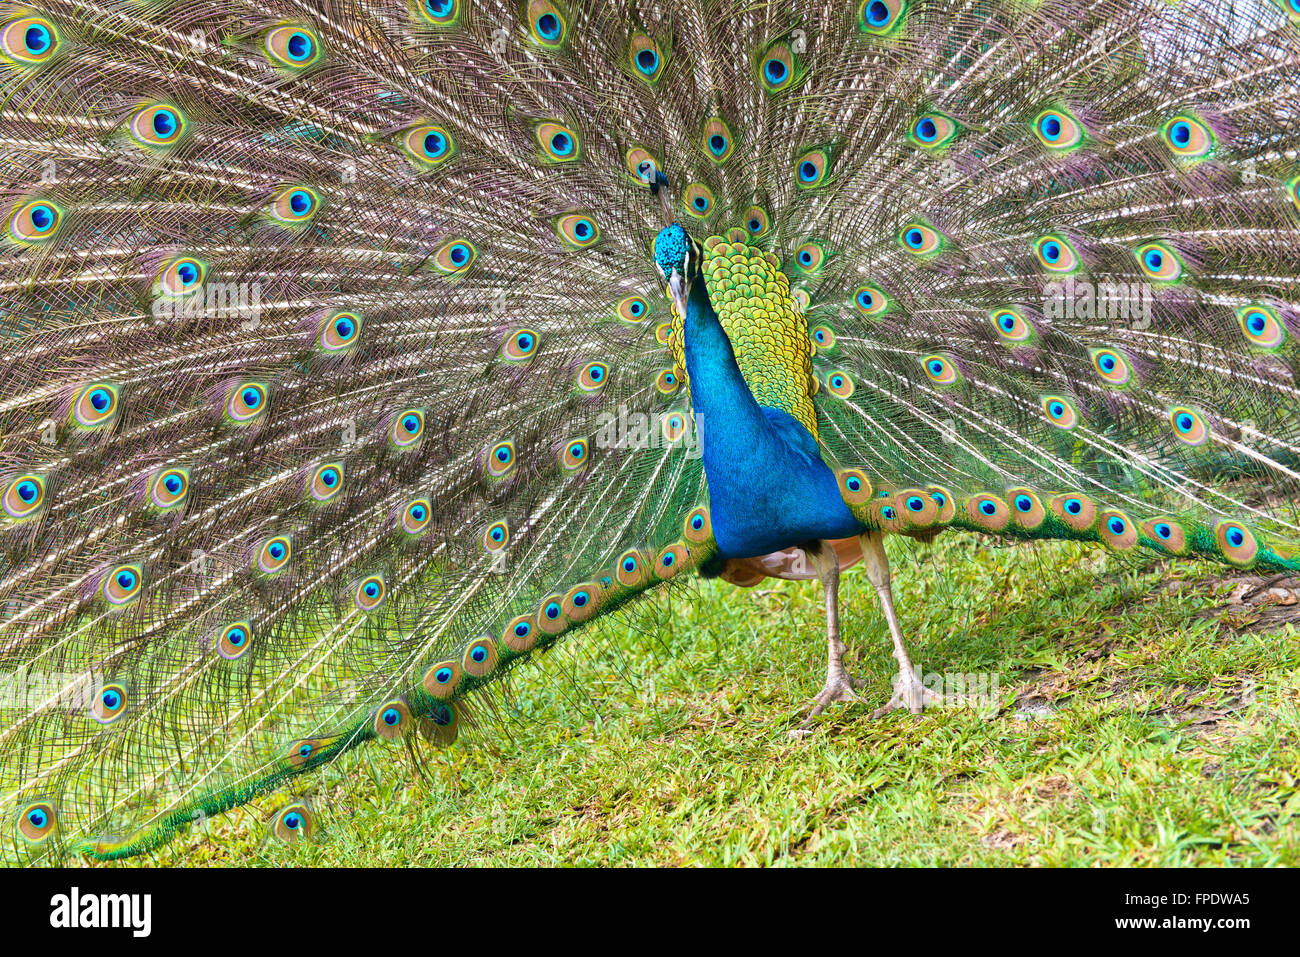 Close up Wide Eye-Spotted Beautiful Tail Feathers of Peafowl Bird at the Grassy Land. Stock Photo